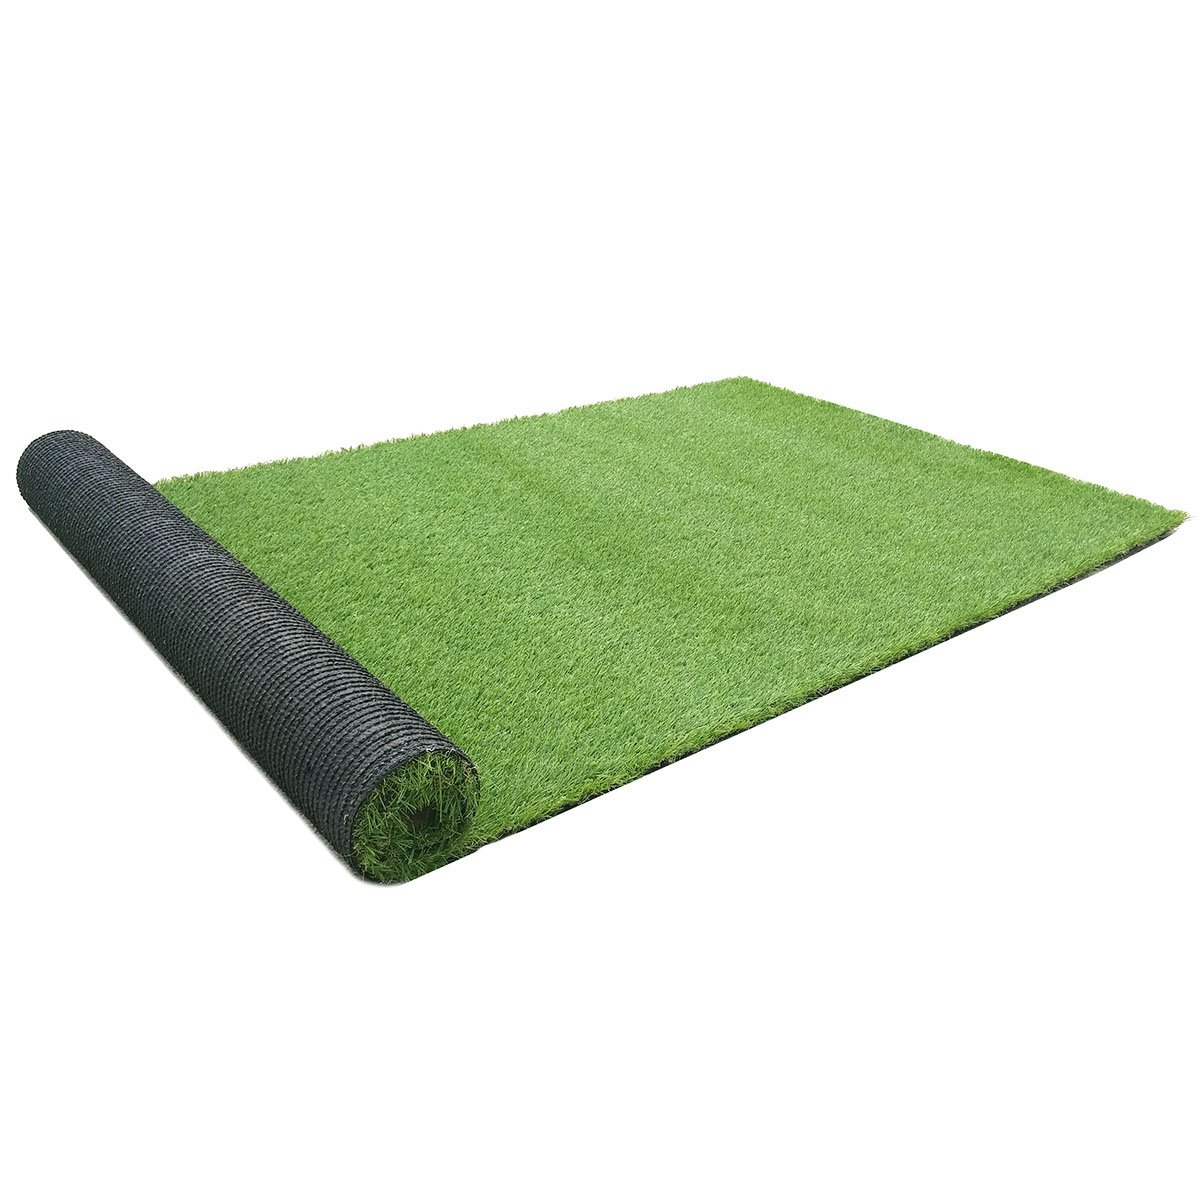 RURALITY Artificial Grass Turf Fake Grass for Patio,Yard and Balcony Decoration (6 Ft X 9 Ft) by Rurality